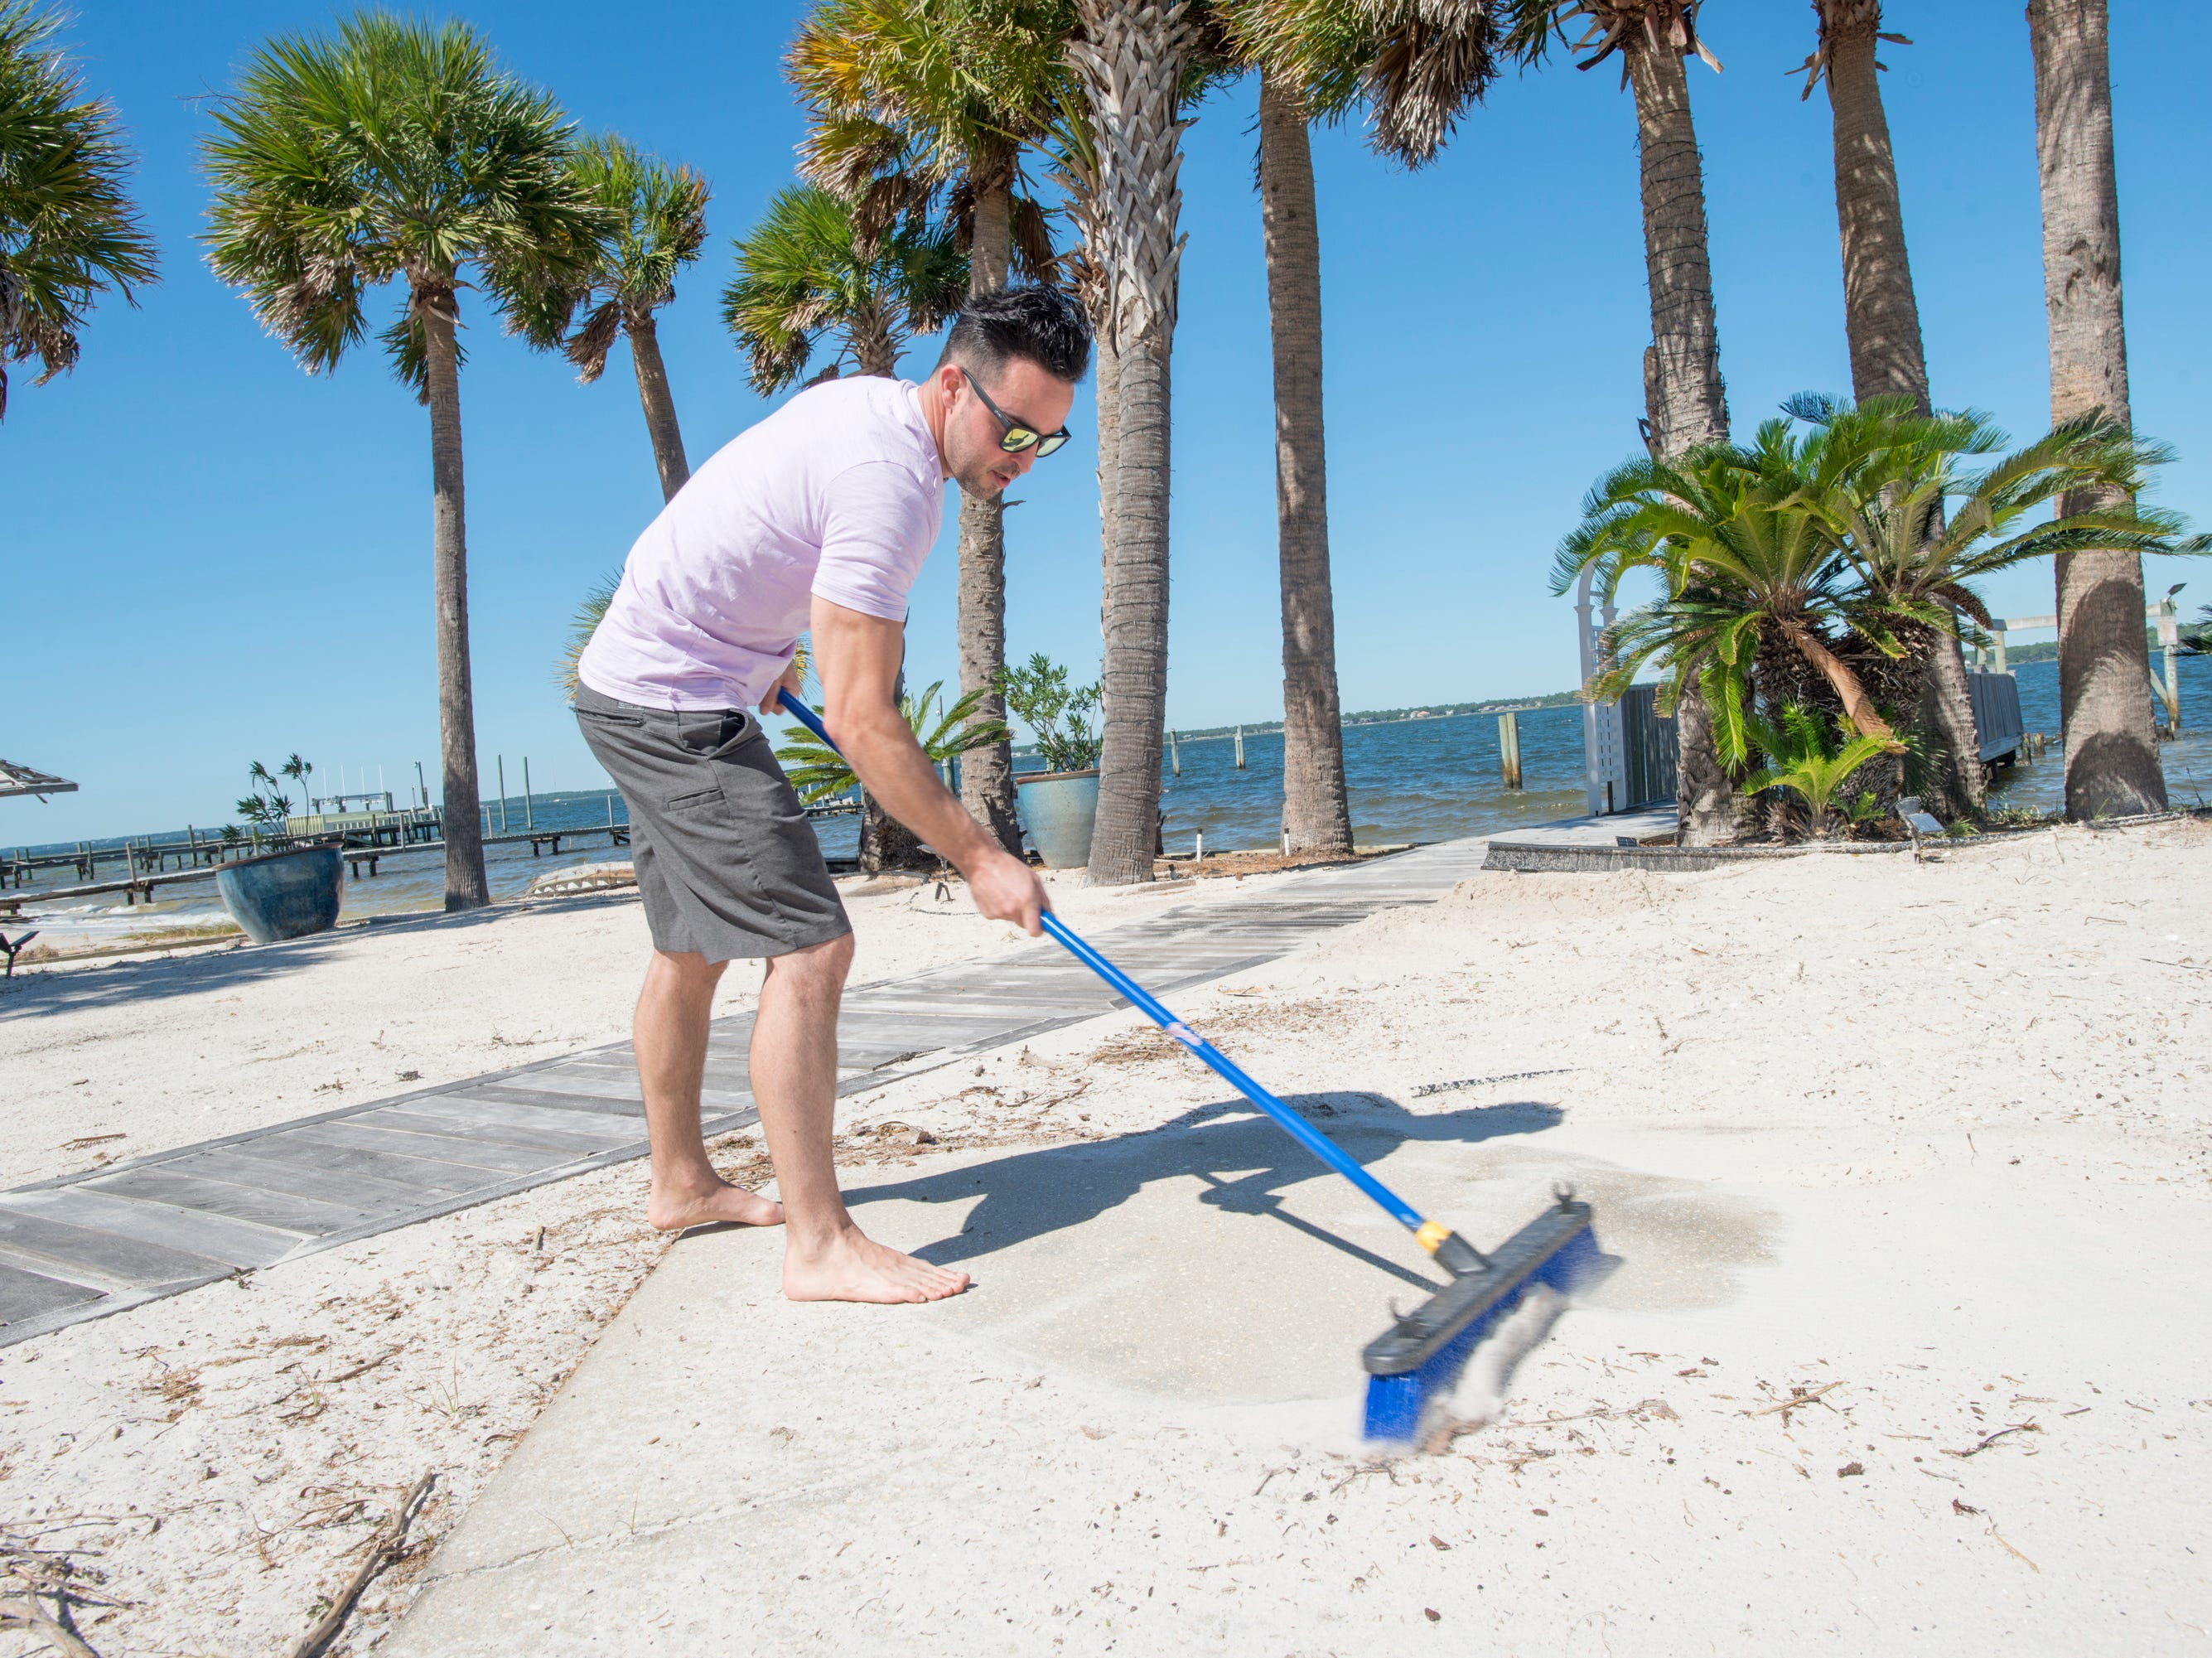 Kevin Tobin sweeps up sand after Hurricane Michael at the house that he and his fiance Danielle rented along Grand Navarre Blvd. in Navarre on Thursday, October 11, 2018.  Tobin and Danielle will be getting married on Saturday and will be having their reception on this property.  They are grateful that the only damage was to the deck and some sand that needed to be swept away.